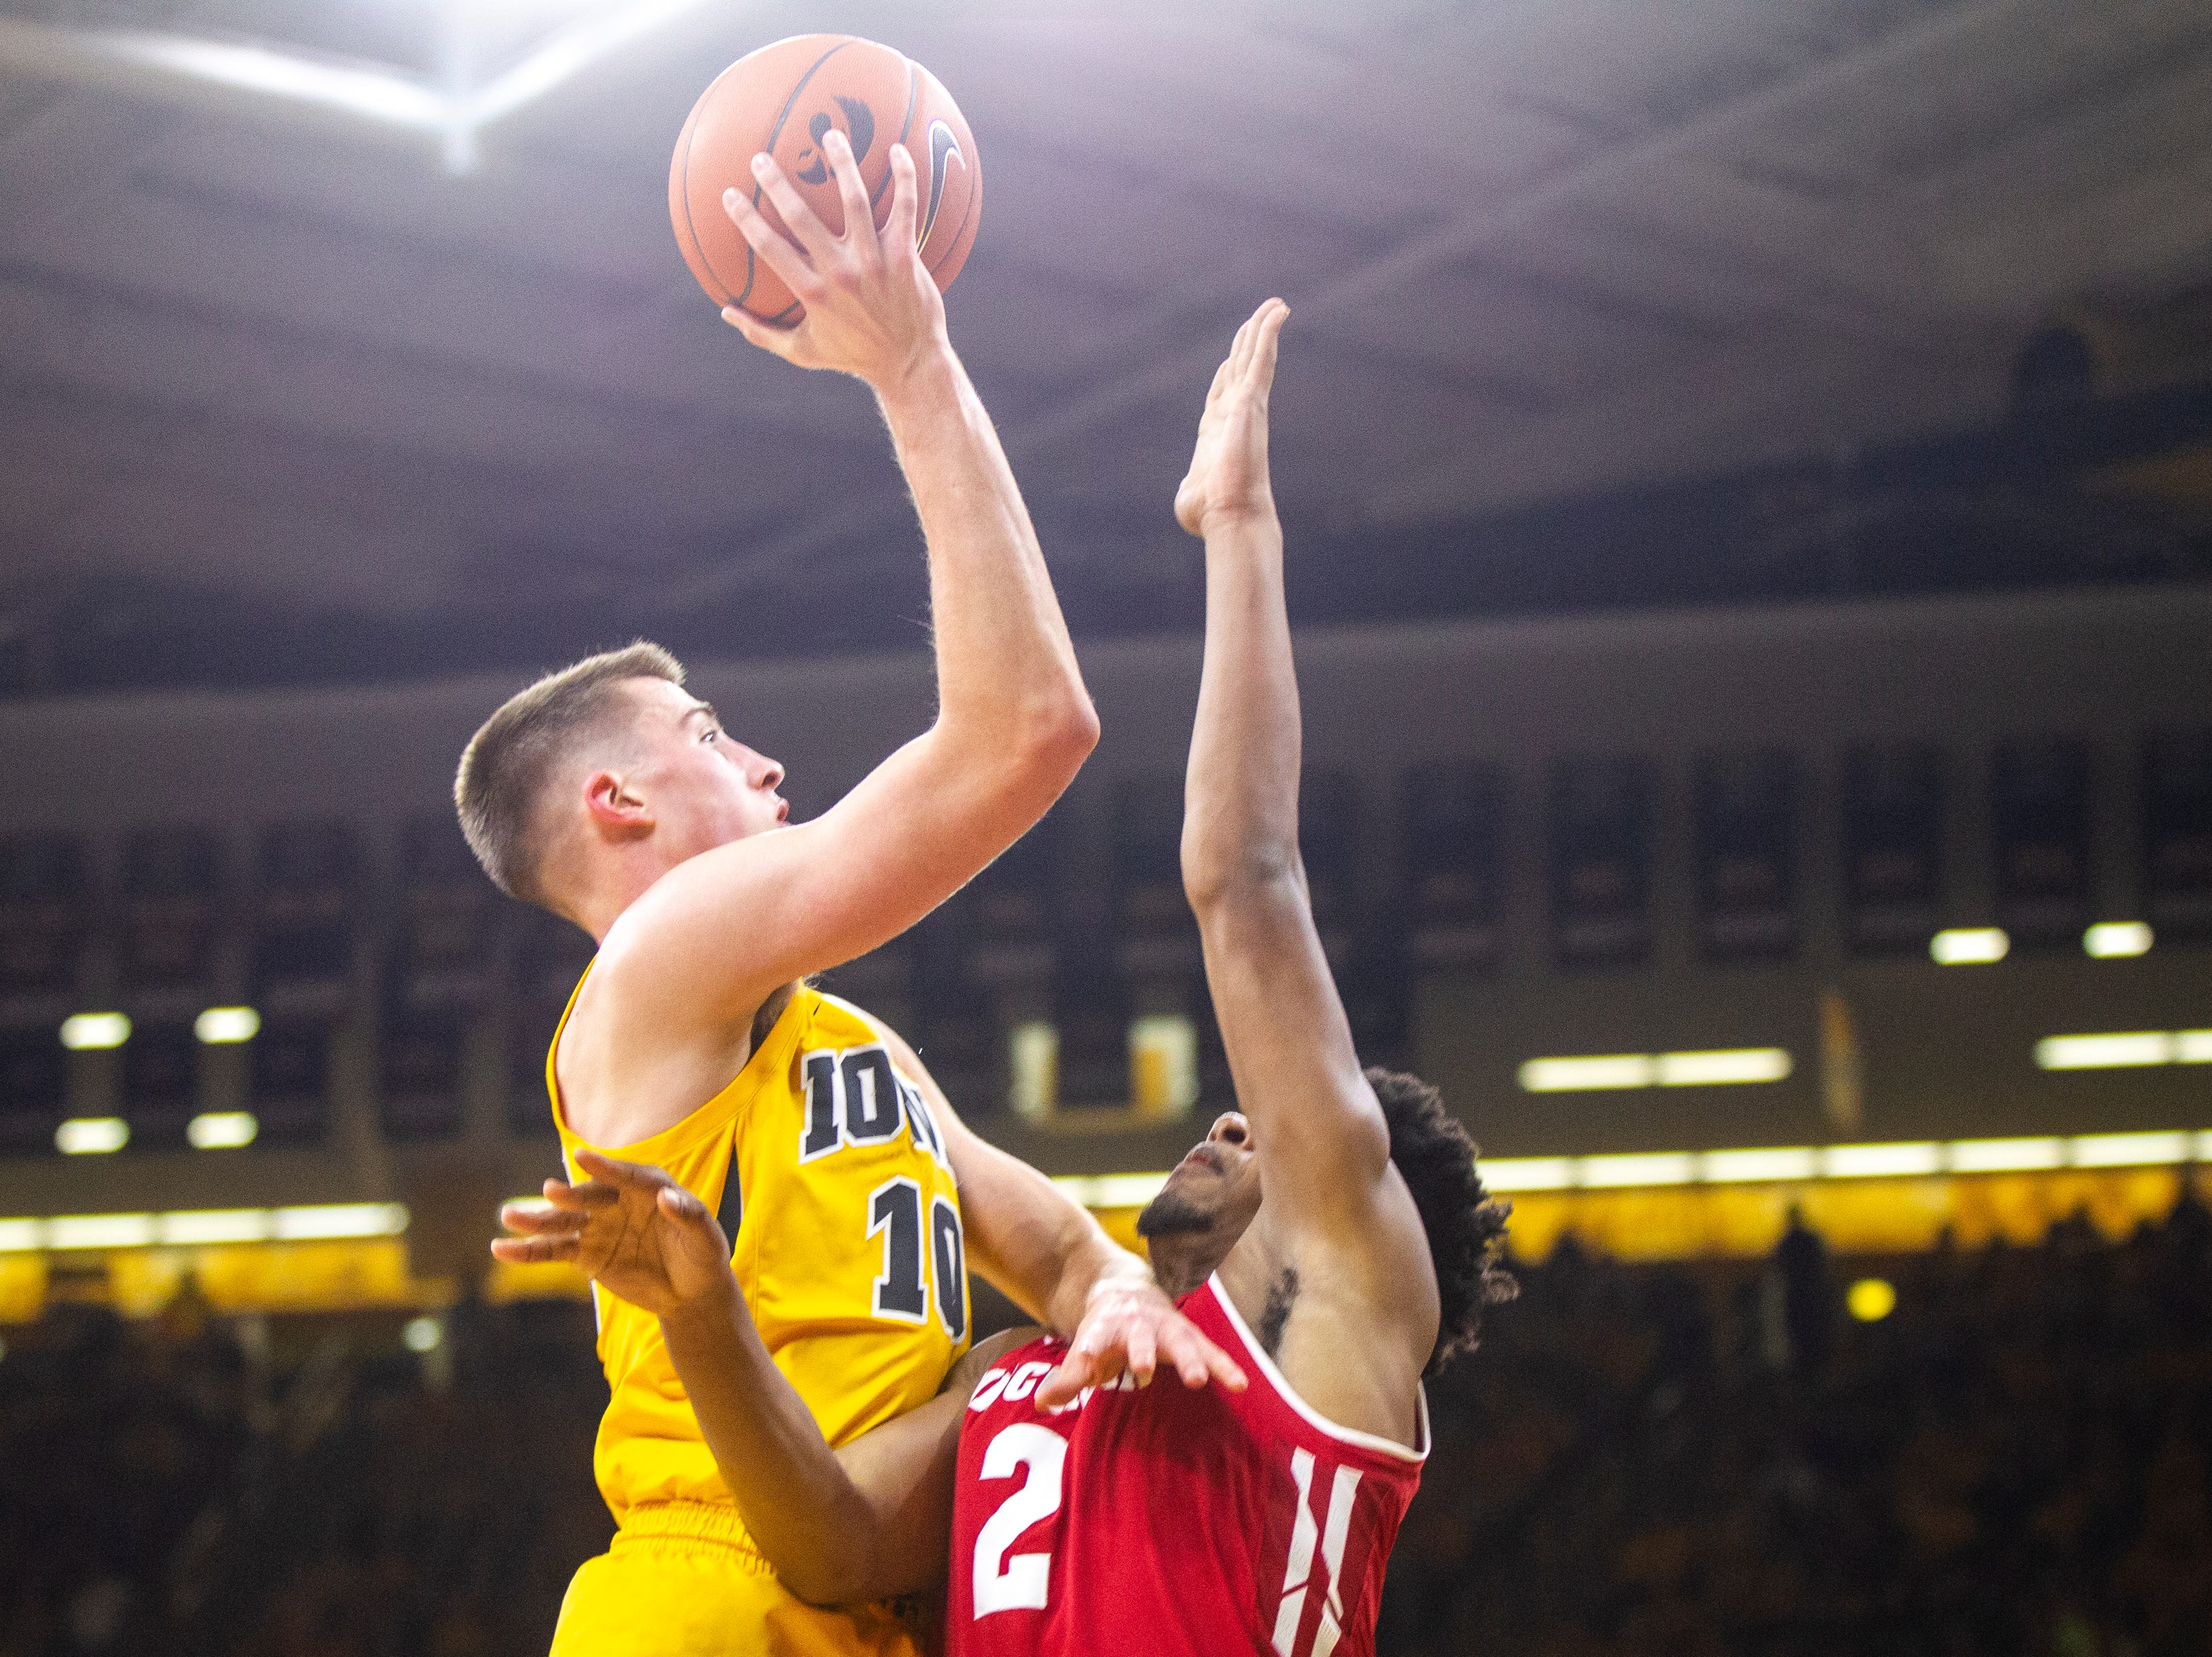 Iowa guard Joe Wieskamp (10) attempts a shot over Wisconsin's Aleem Ford (2) during a NCAA Big Ten Conference men's basketball game on Friday, Nov. 30, 2018, at Carver-Hawkeye Arena in Iowa City.